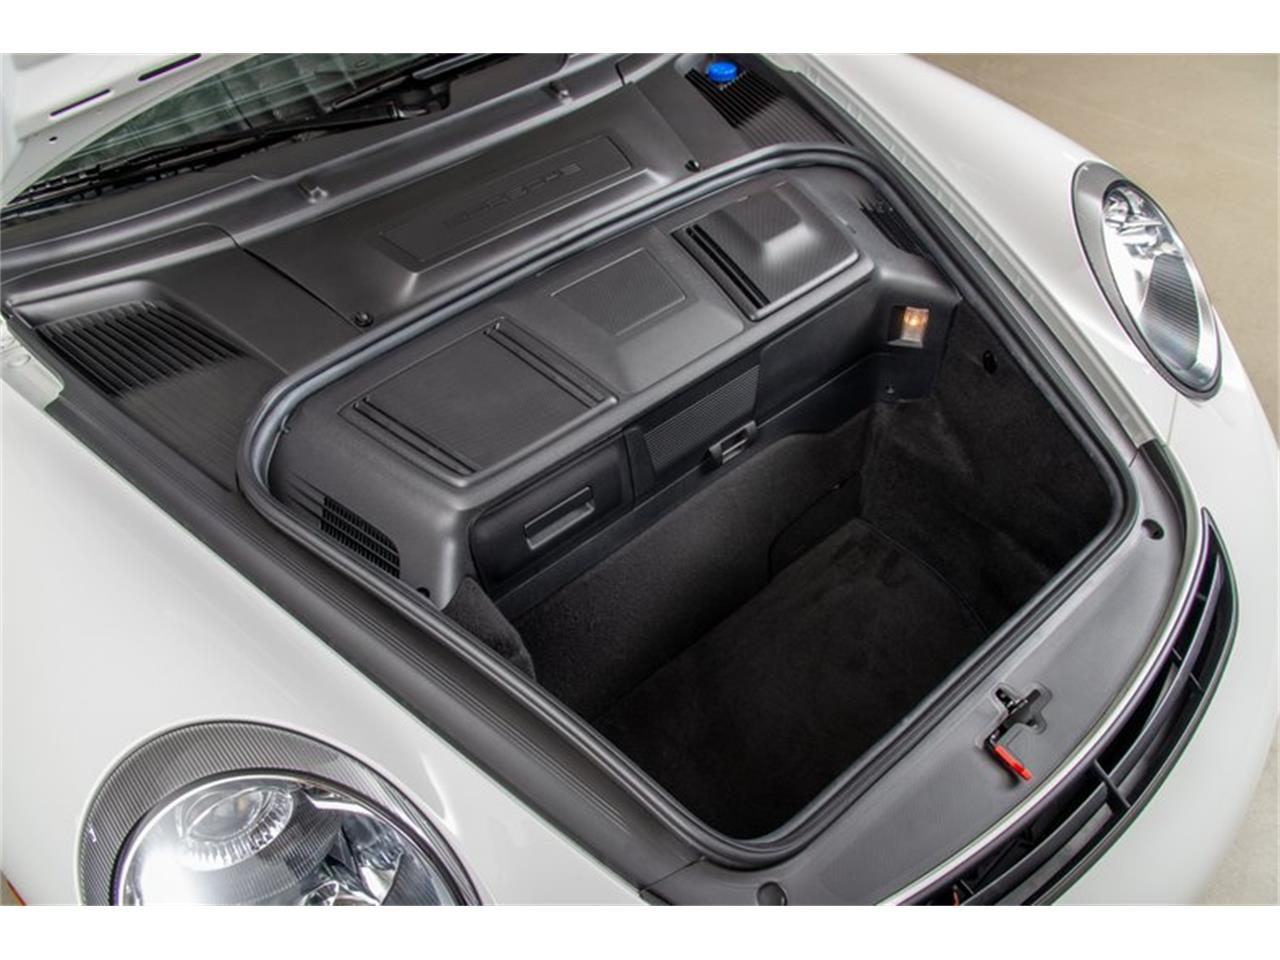 Large Picture of 2007 Porsche 911 located in Scotts Valley California Auction Vehicle Offered by Canepa - QTBQ